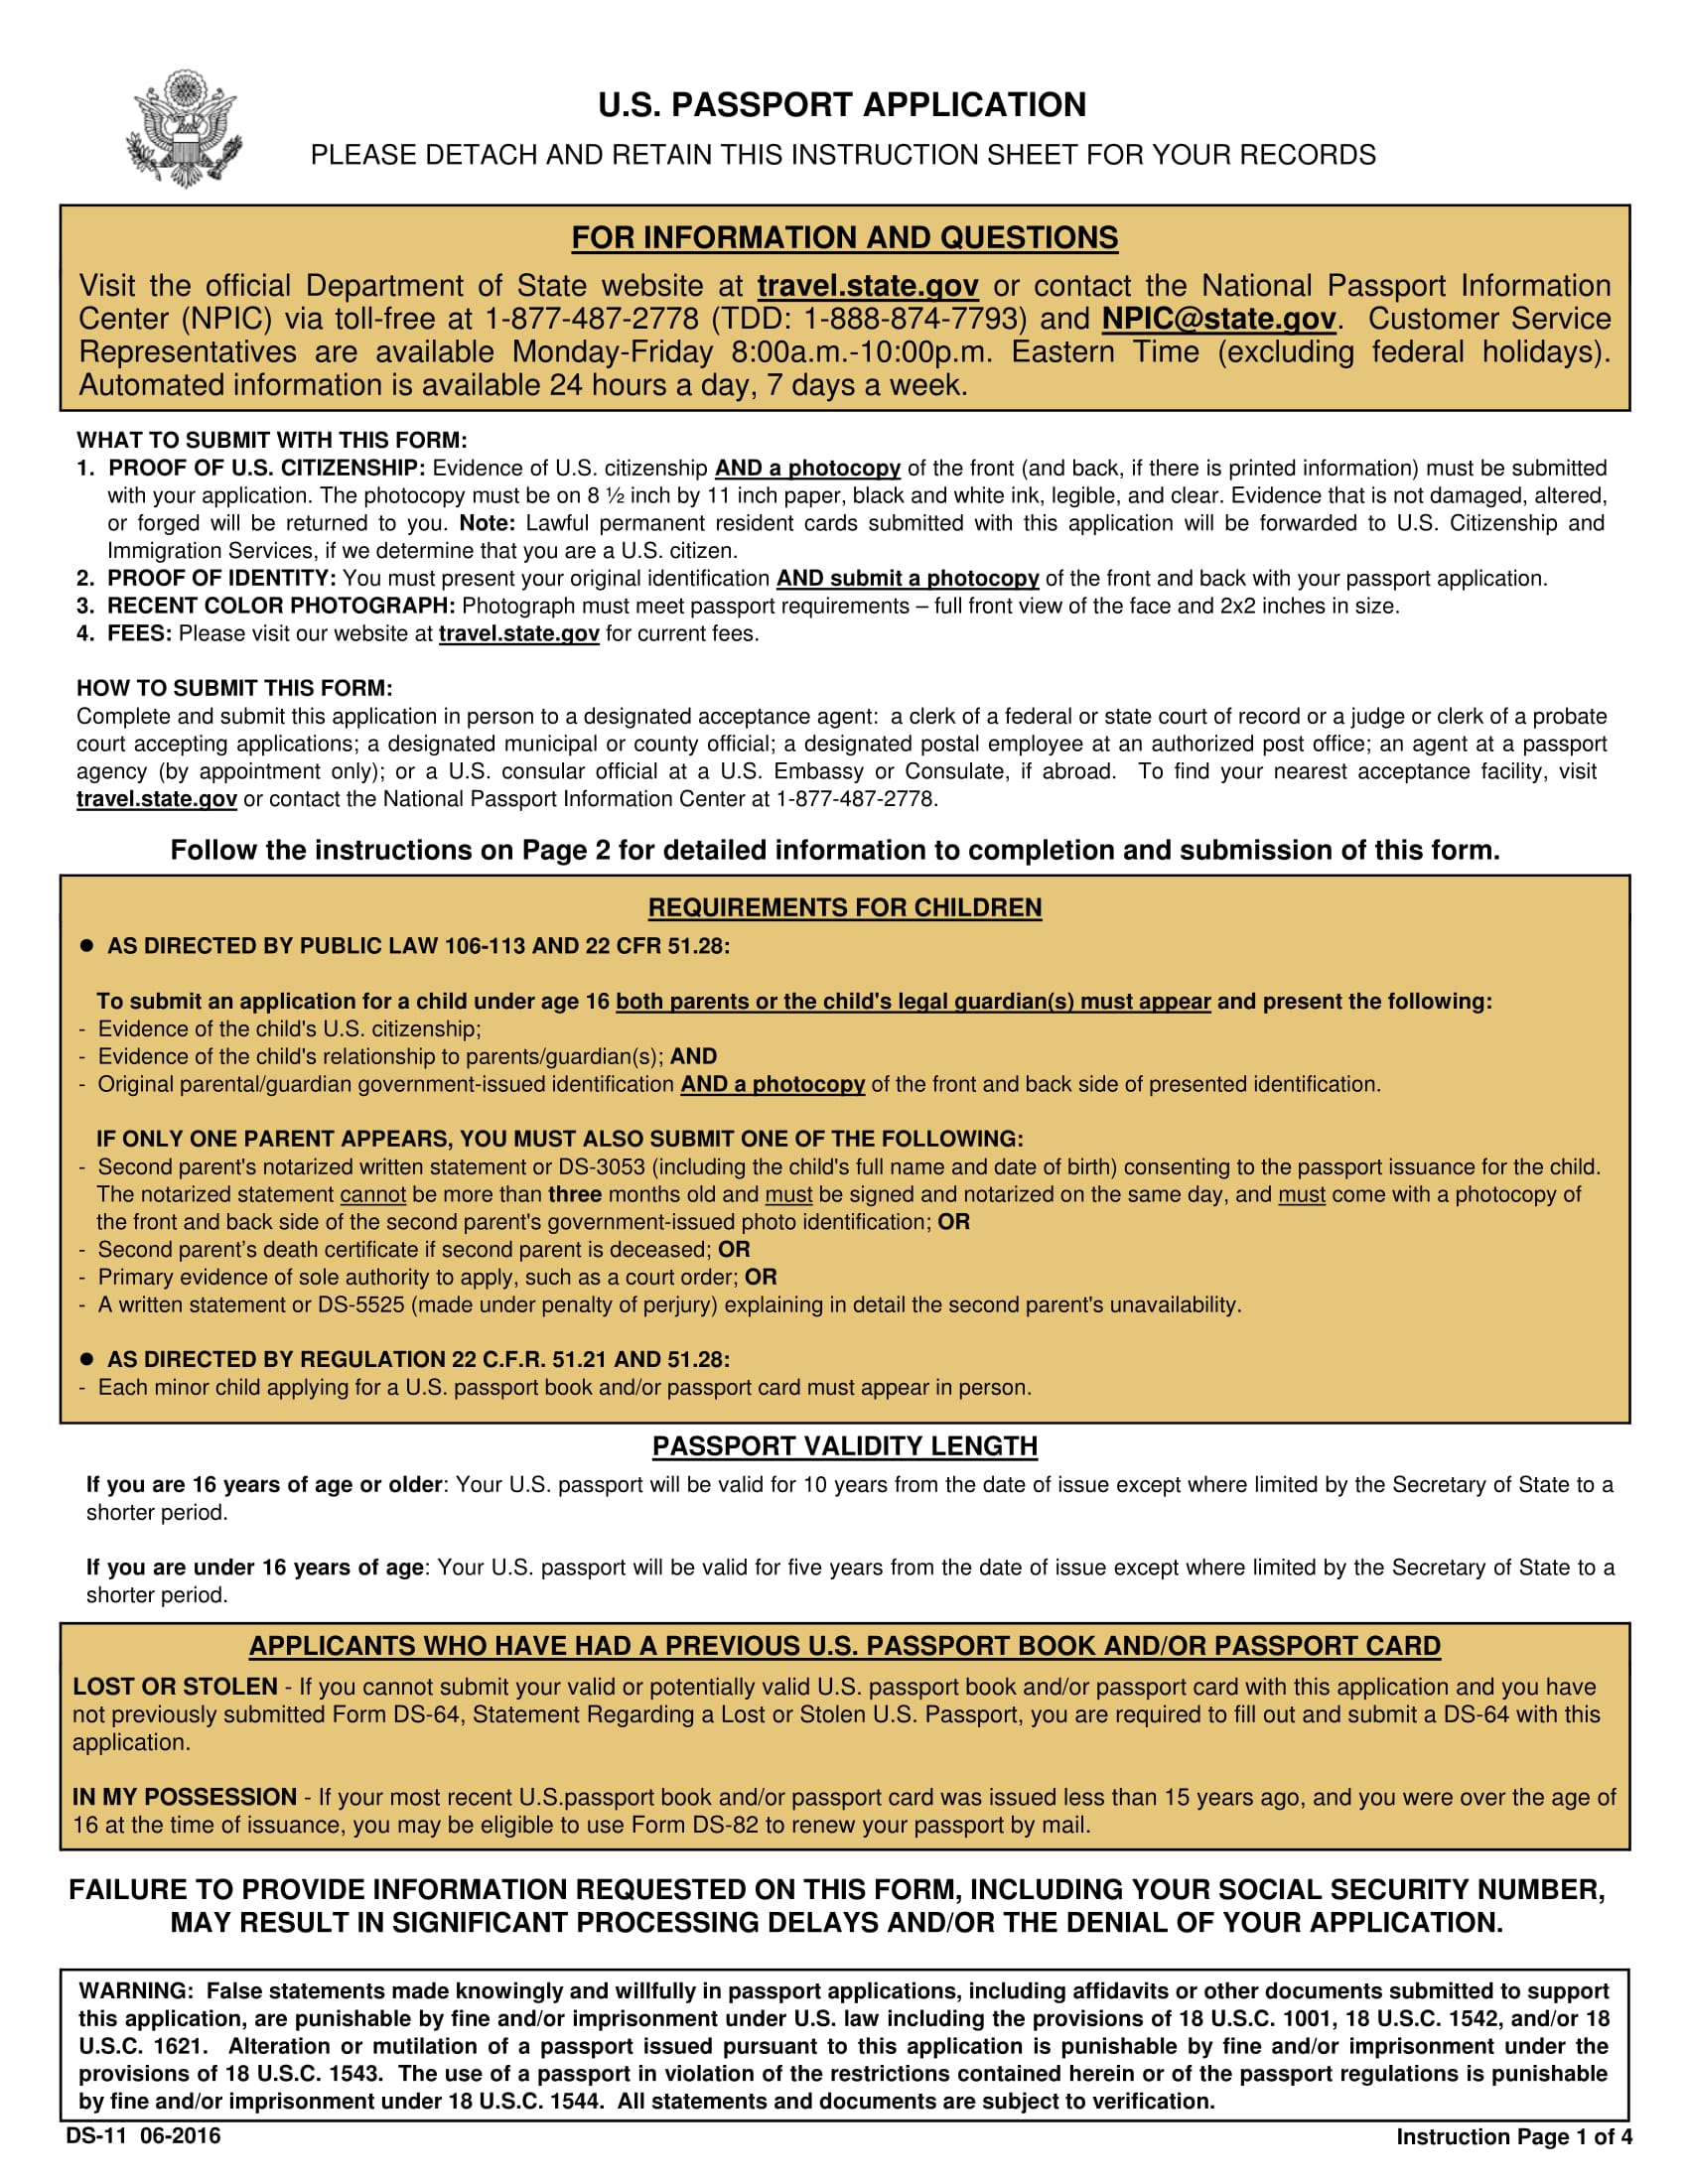 Passport child application form choice image standard form examples free application for a us passport wikiform wikiform application for a us passport falaconquin falaconquin